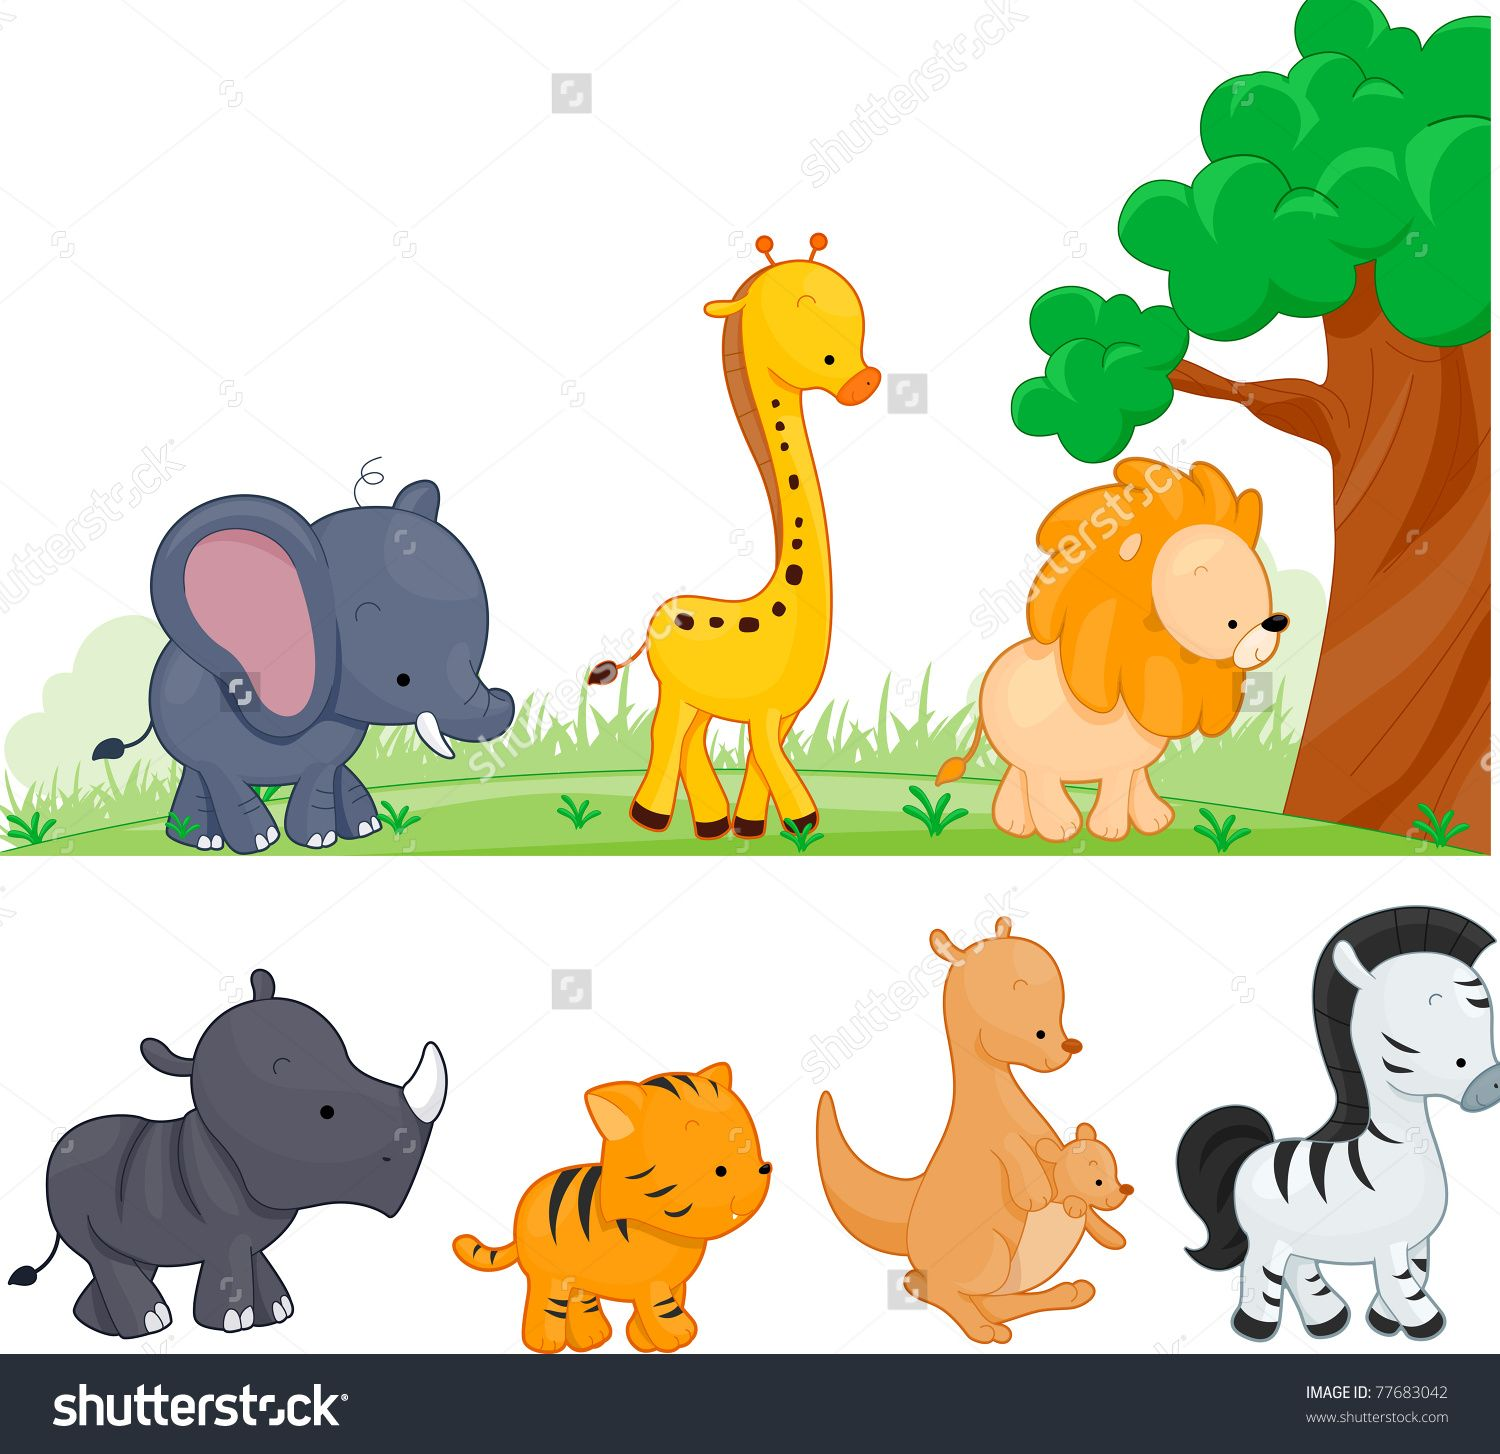 Illustration Of Animals Walking By Free Vector Illustration Illustration Animal Illustration